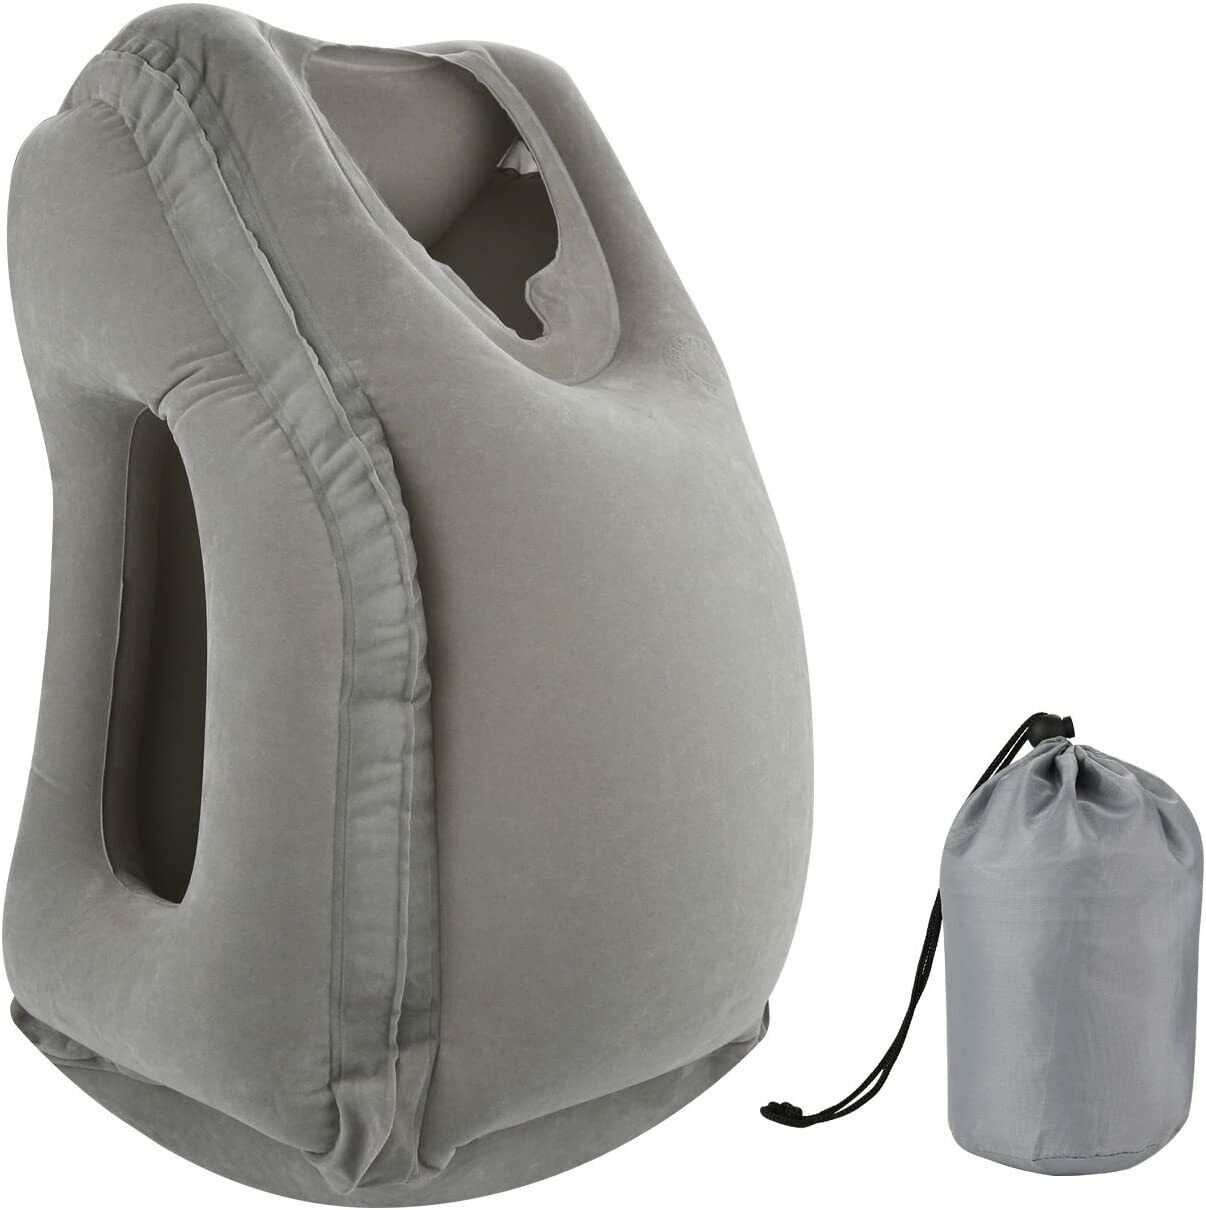 Inflatable Air Travel Pillow Airplane Office Nap Rest Neck Head Chin Cushion - $12.79